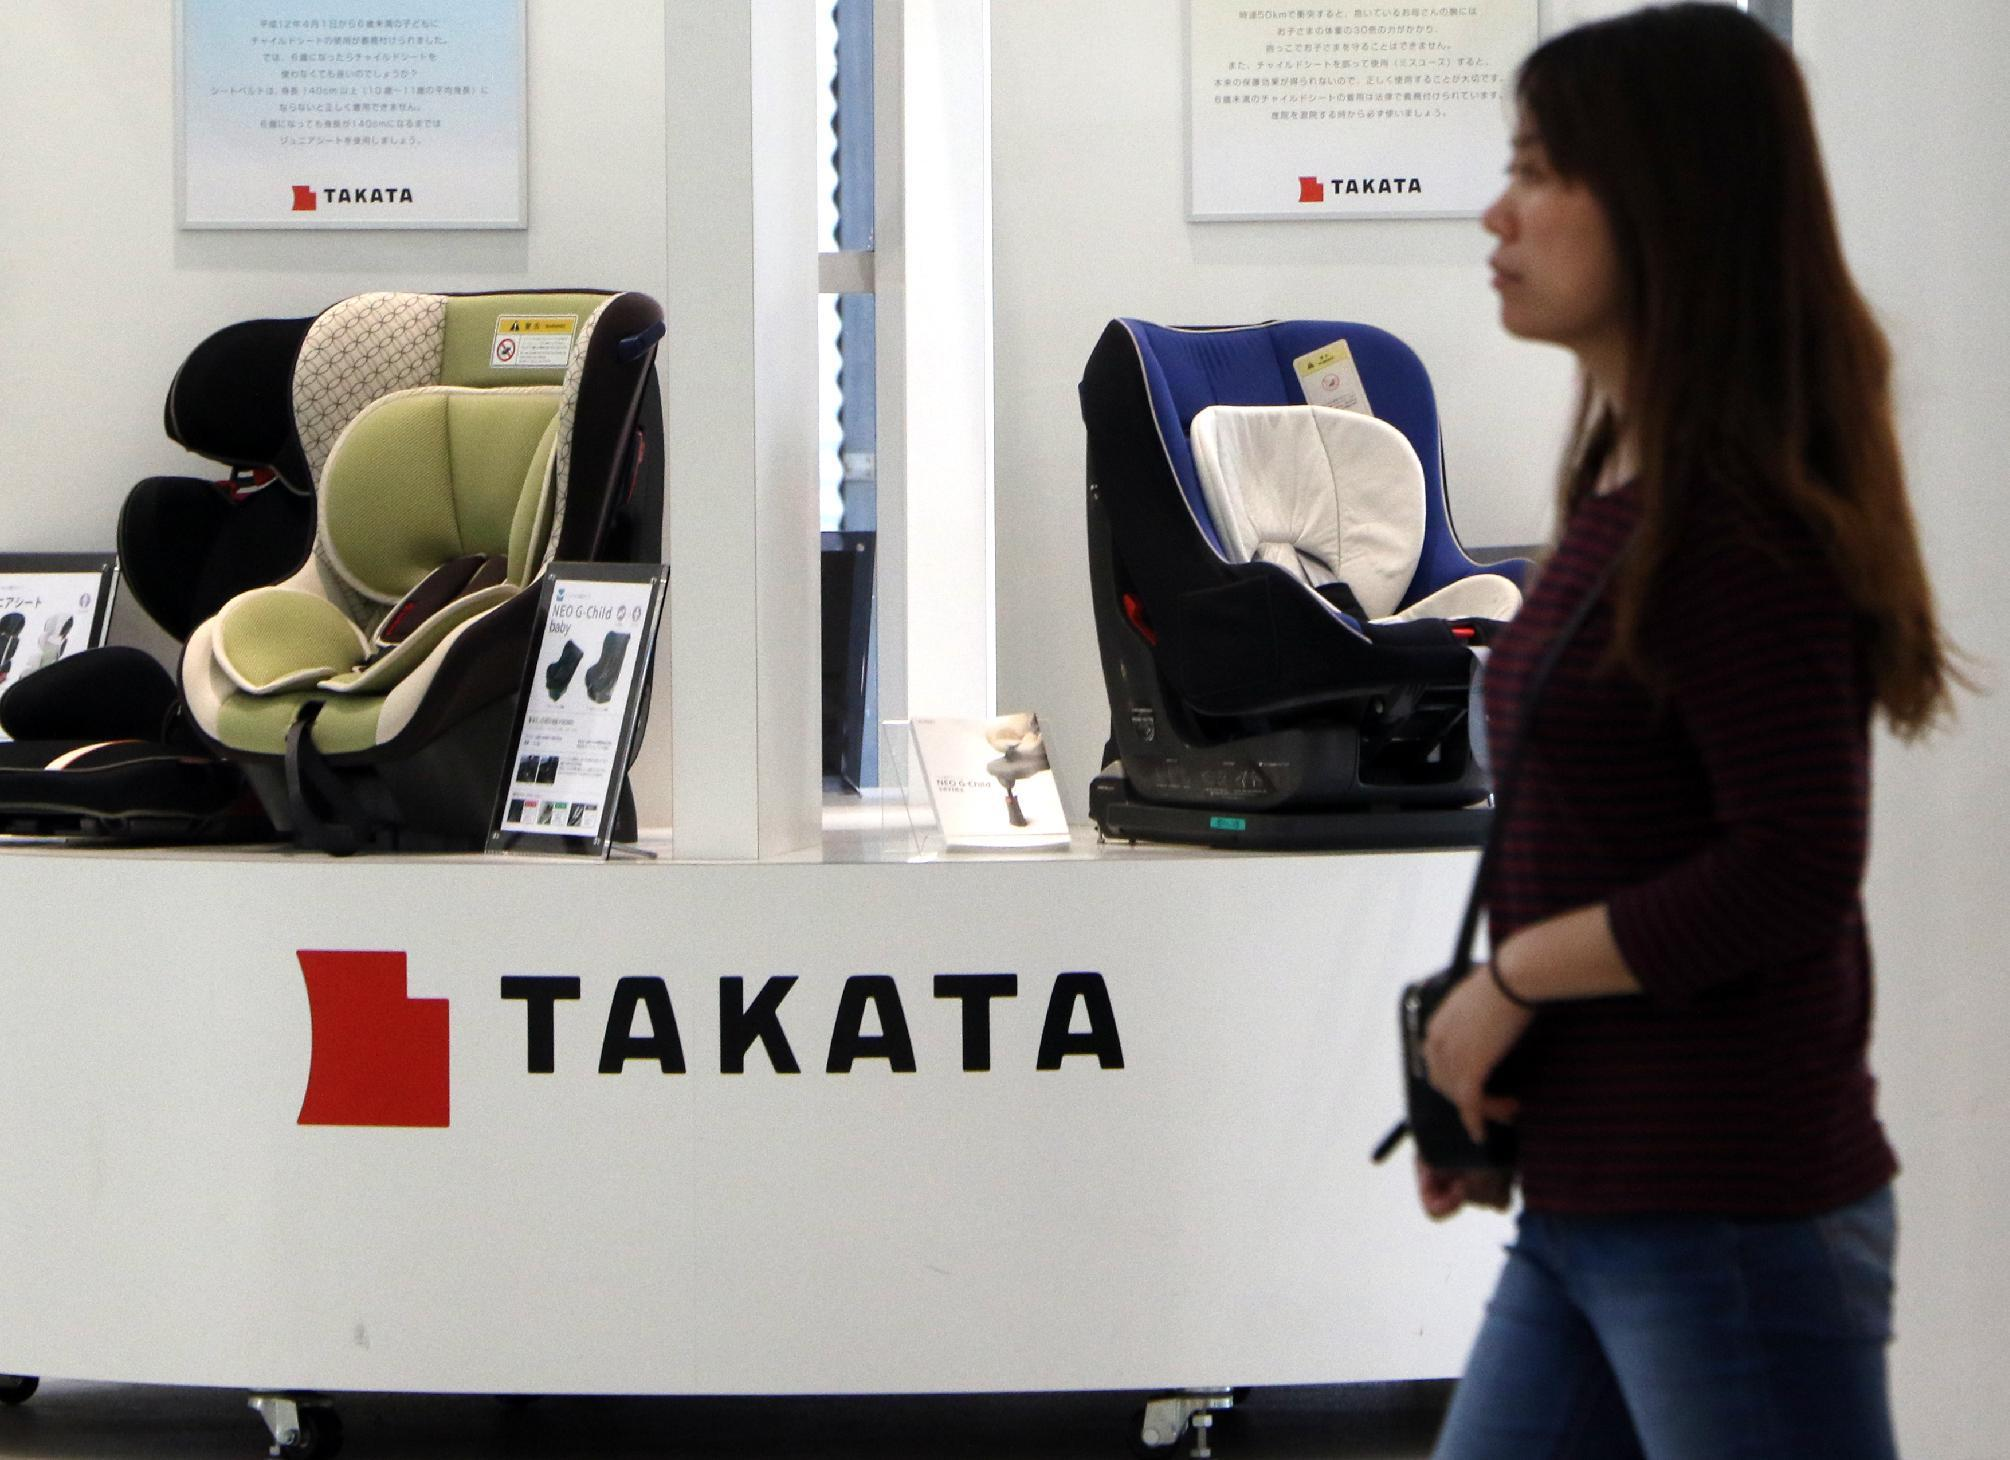 Canada recall of Takata airbags balloons to 1.5 million